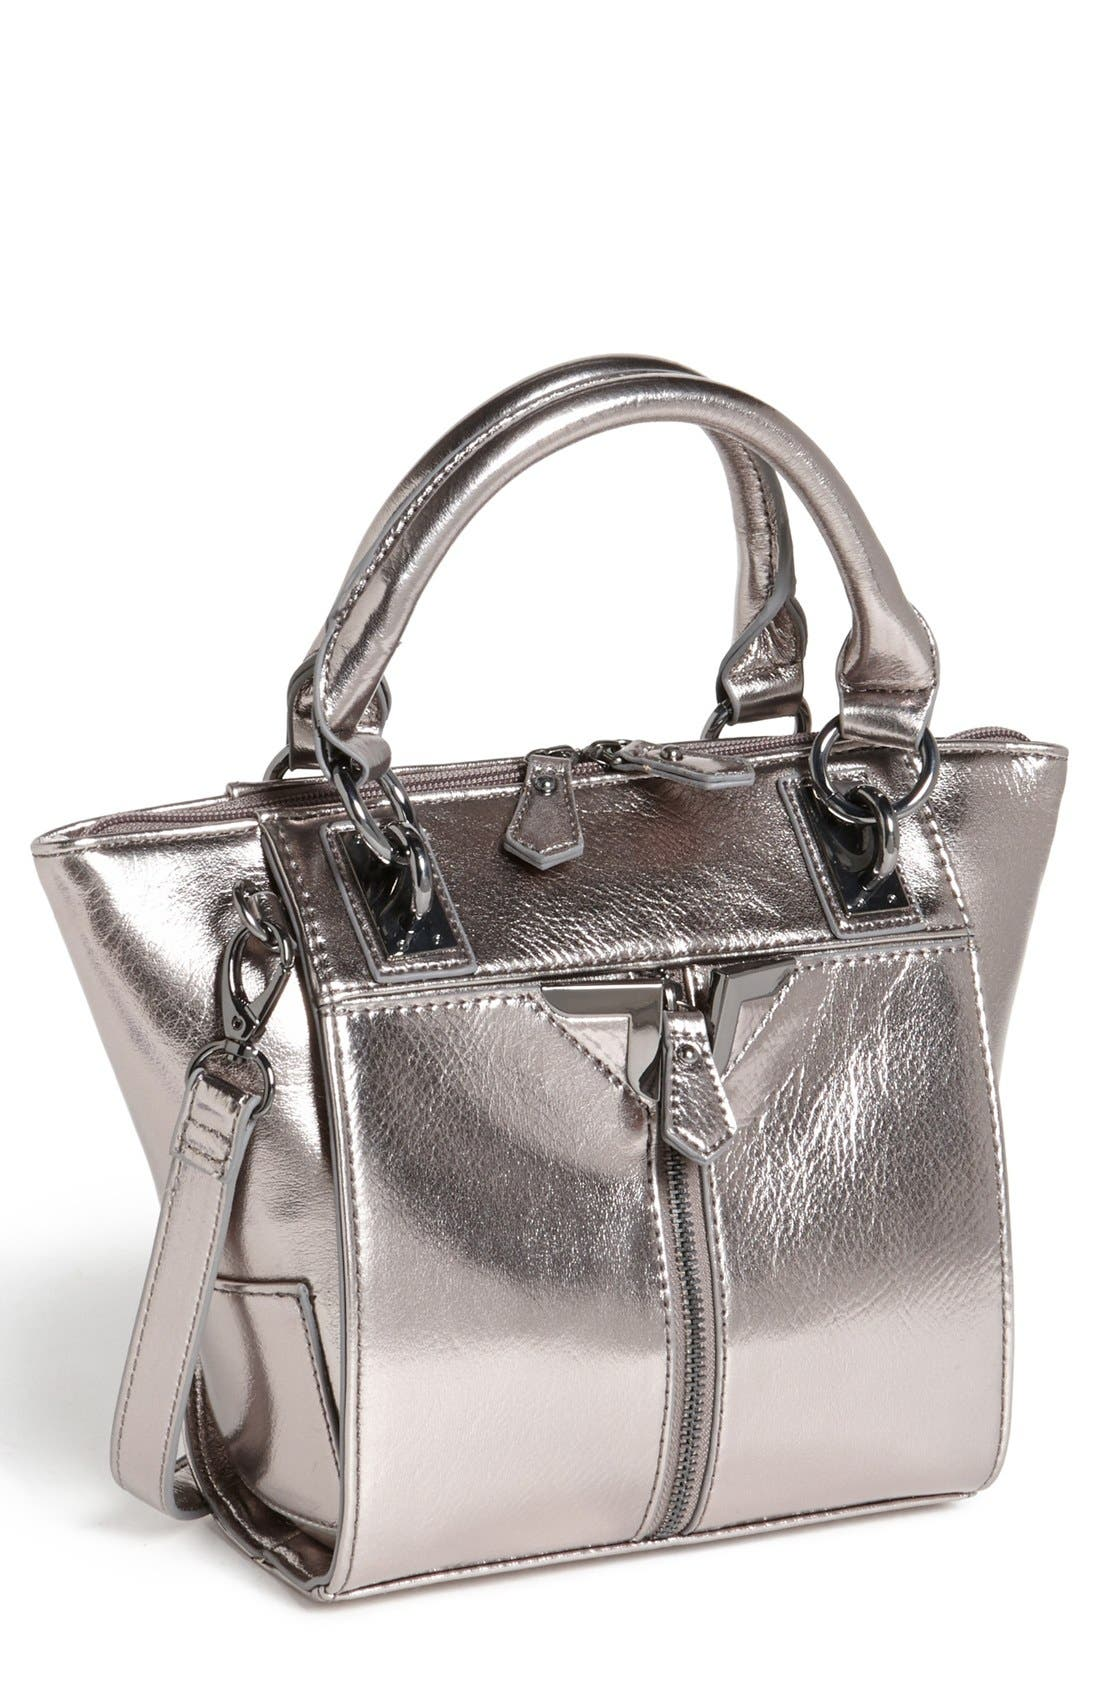 Main Image - Danielle Nicole 'Alexa - Mini' Crossbody Bag